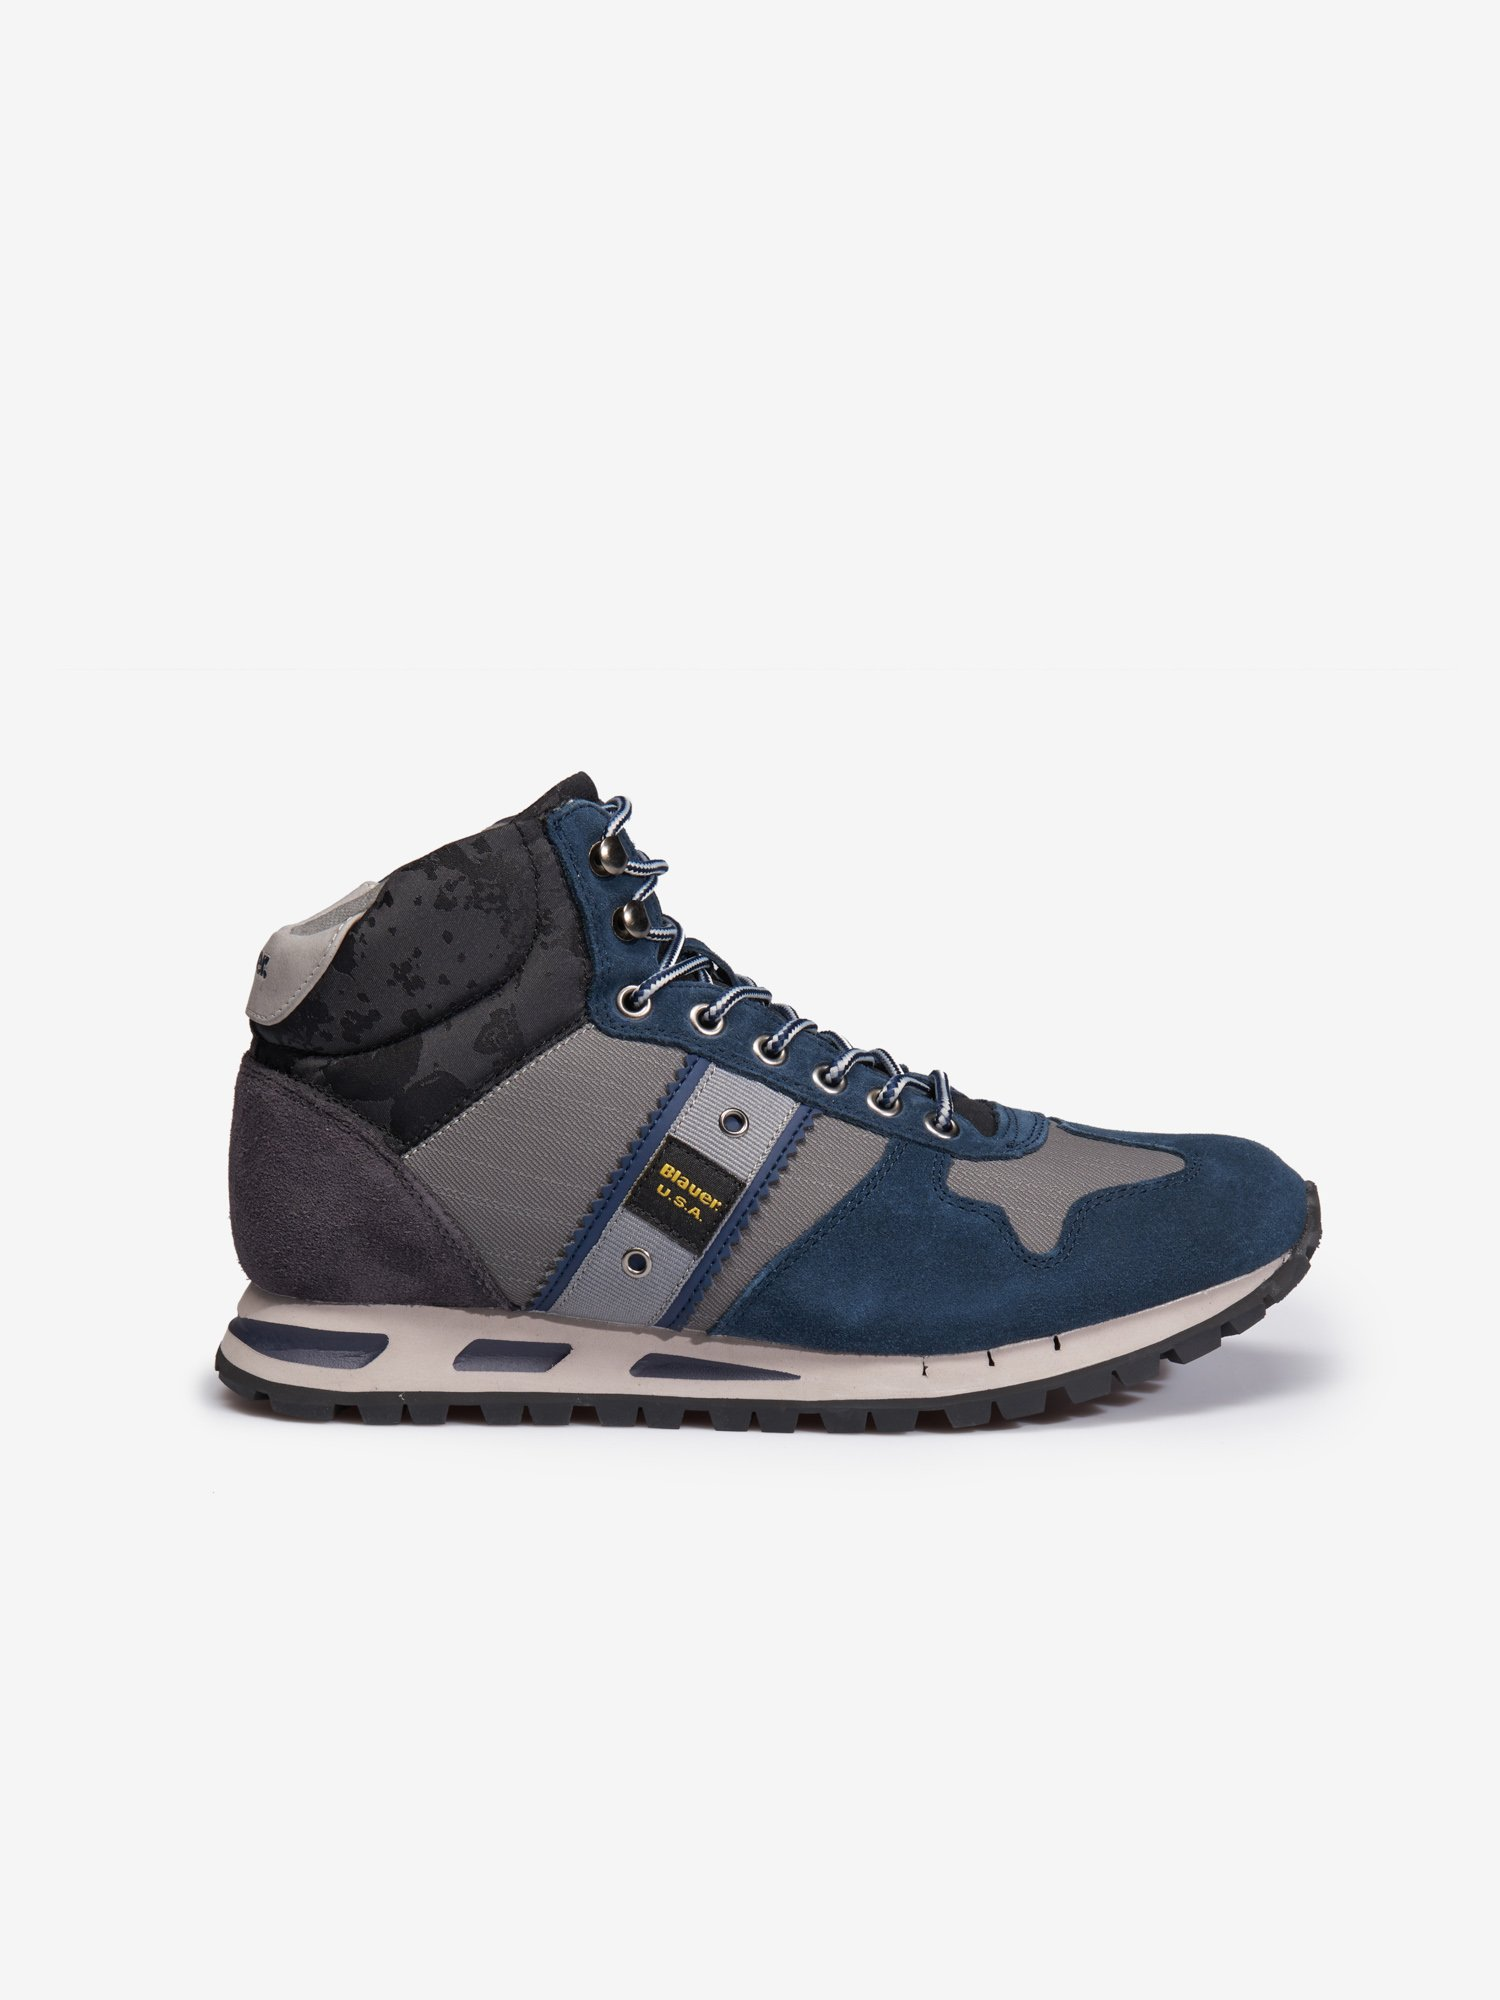 MUSTANG HIGH-TOP SUEDE TRAINERS - Blauer